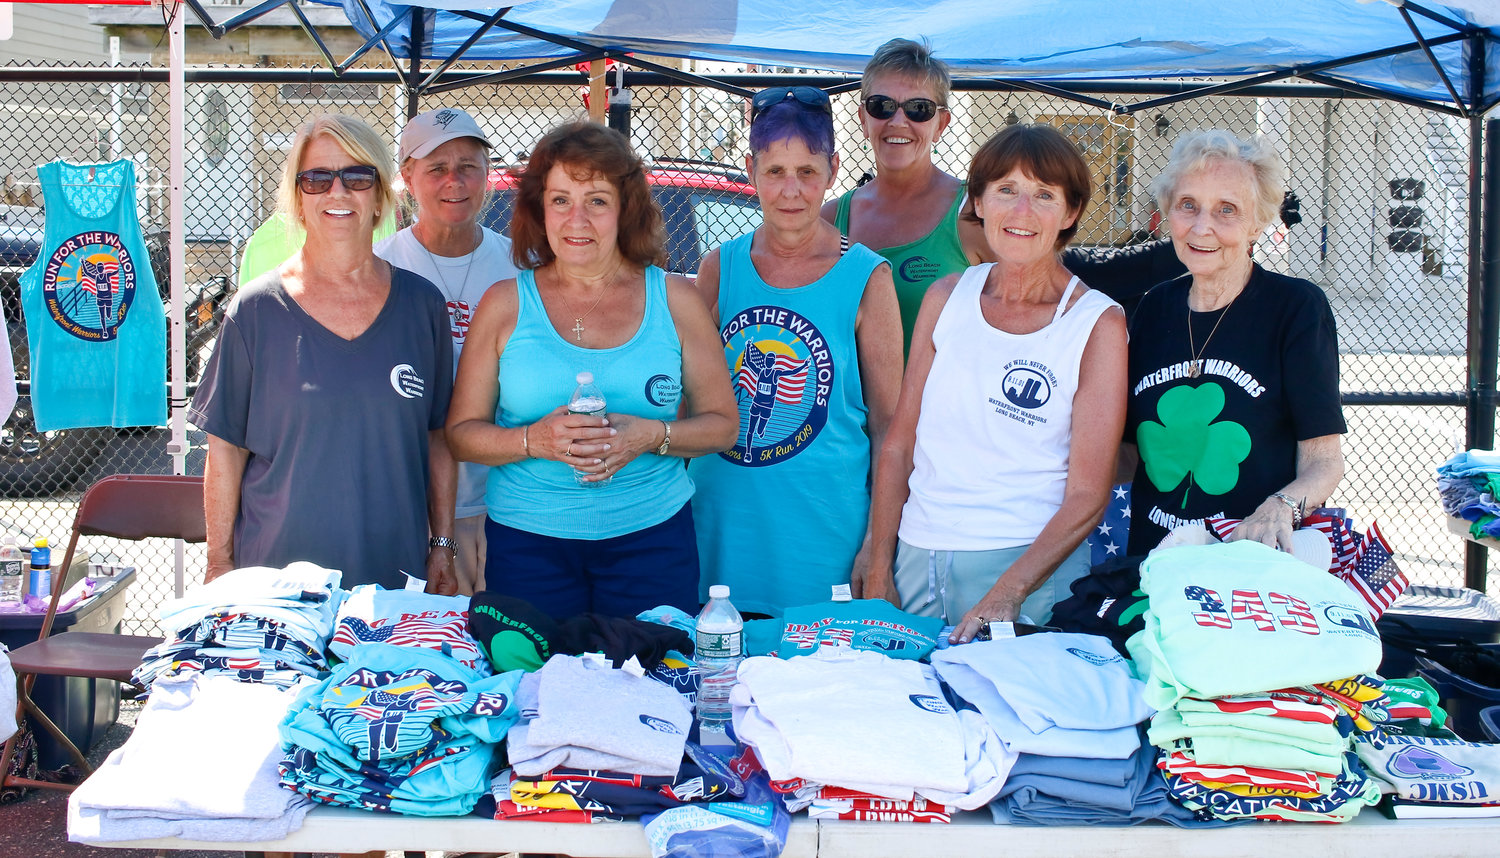 The T-Shirt Team raised money for the organization at the barbecue and sold Waterfront Warrior and veteran-themed merchandise.